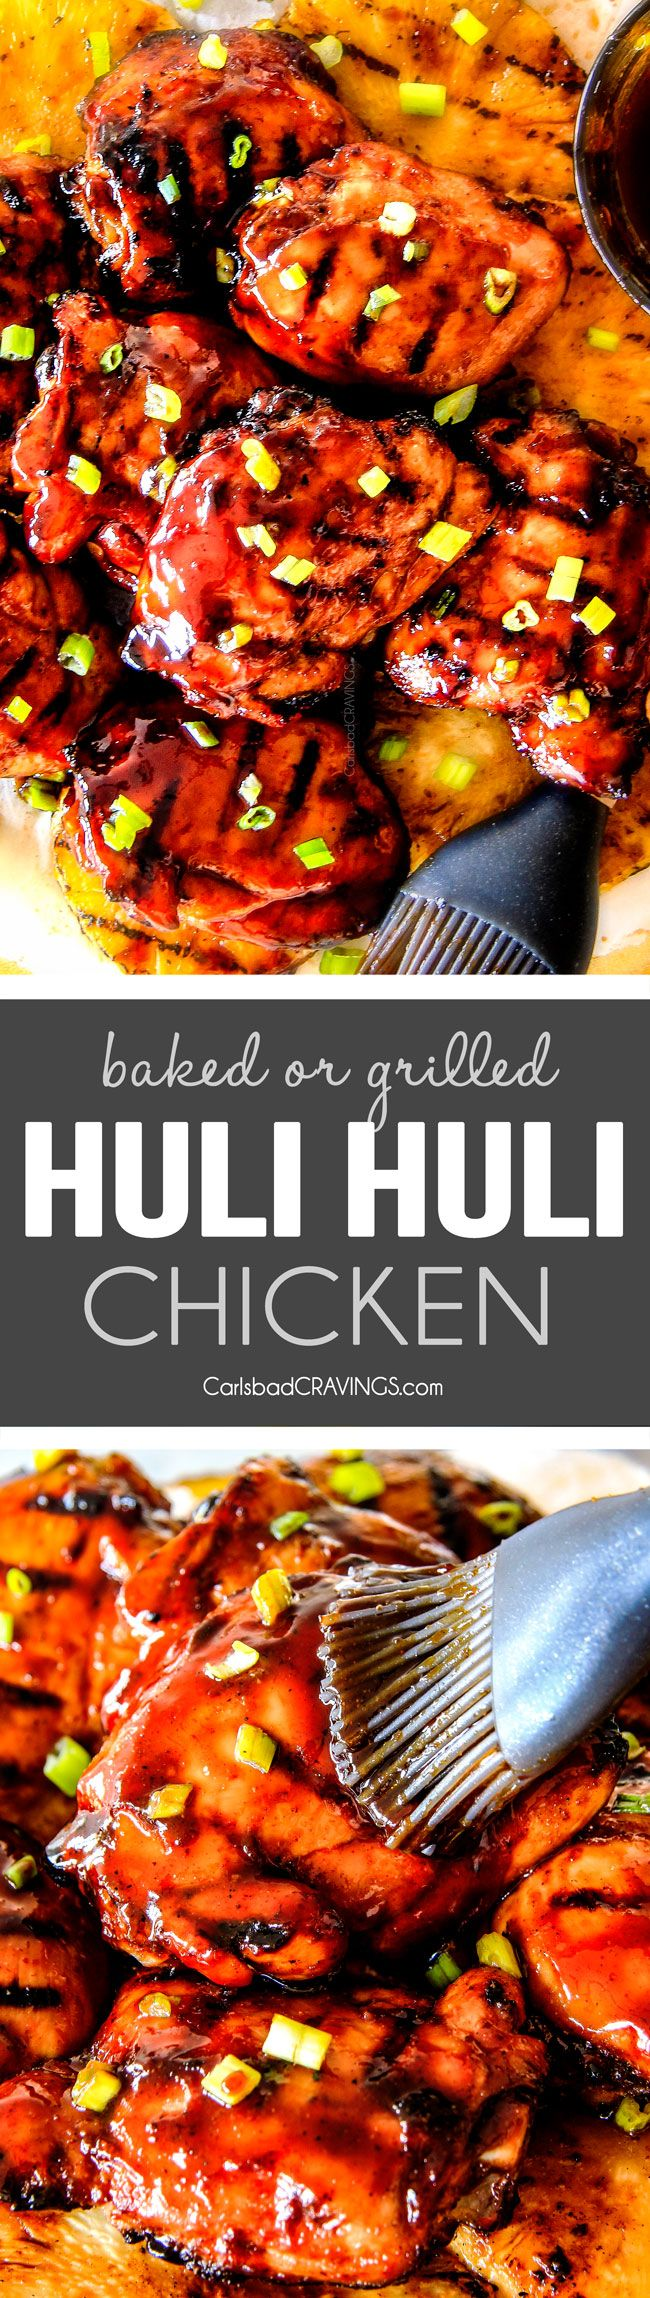 Grilled OR BAKED! Huli Huli Chicken is bursting with sweet and savory Hawaiian teriyaki flavor that is out of this world! The marinade doubles as the incredible glaze and the spice rub takes this chi (Whole Chicken Marinade)